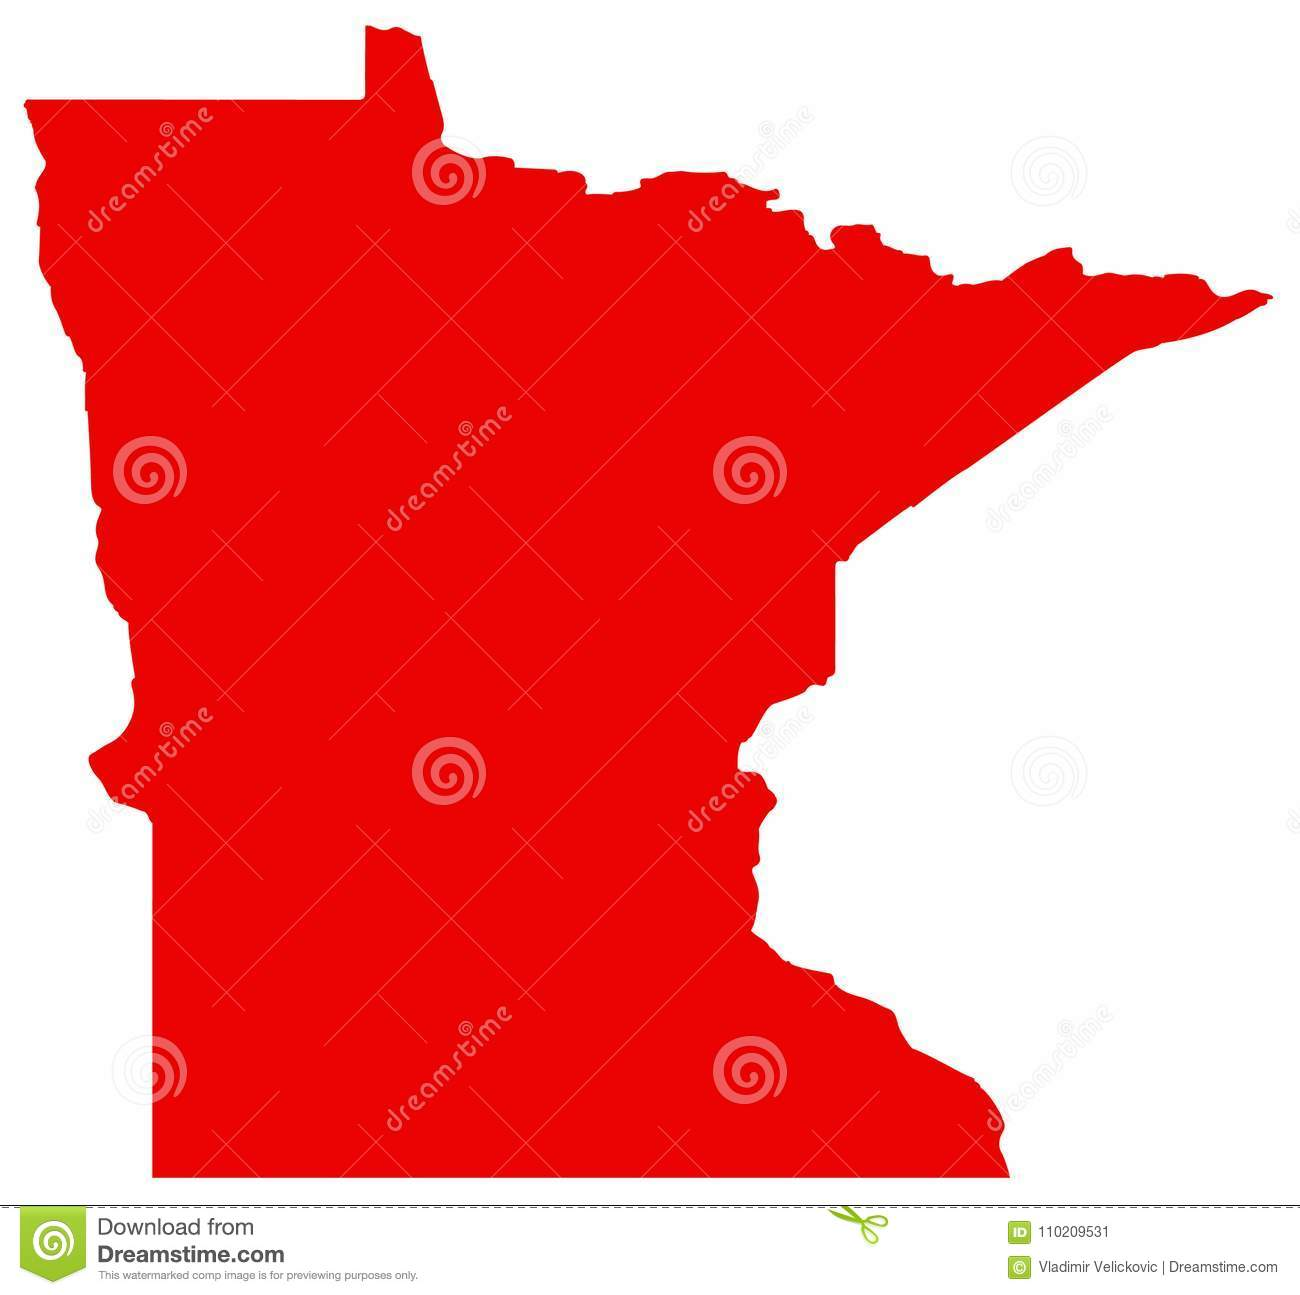 Minnesota Map - State In The Midwestern And Northern Regions Of The ...